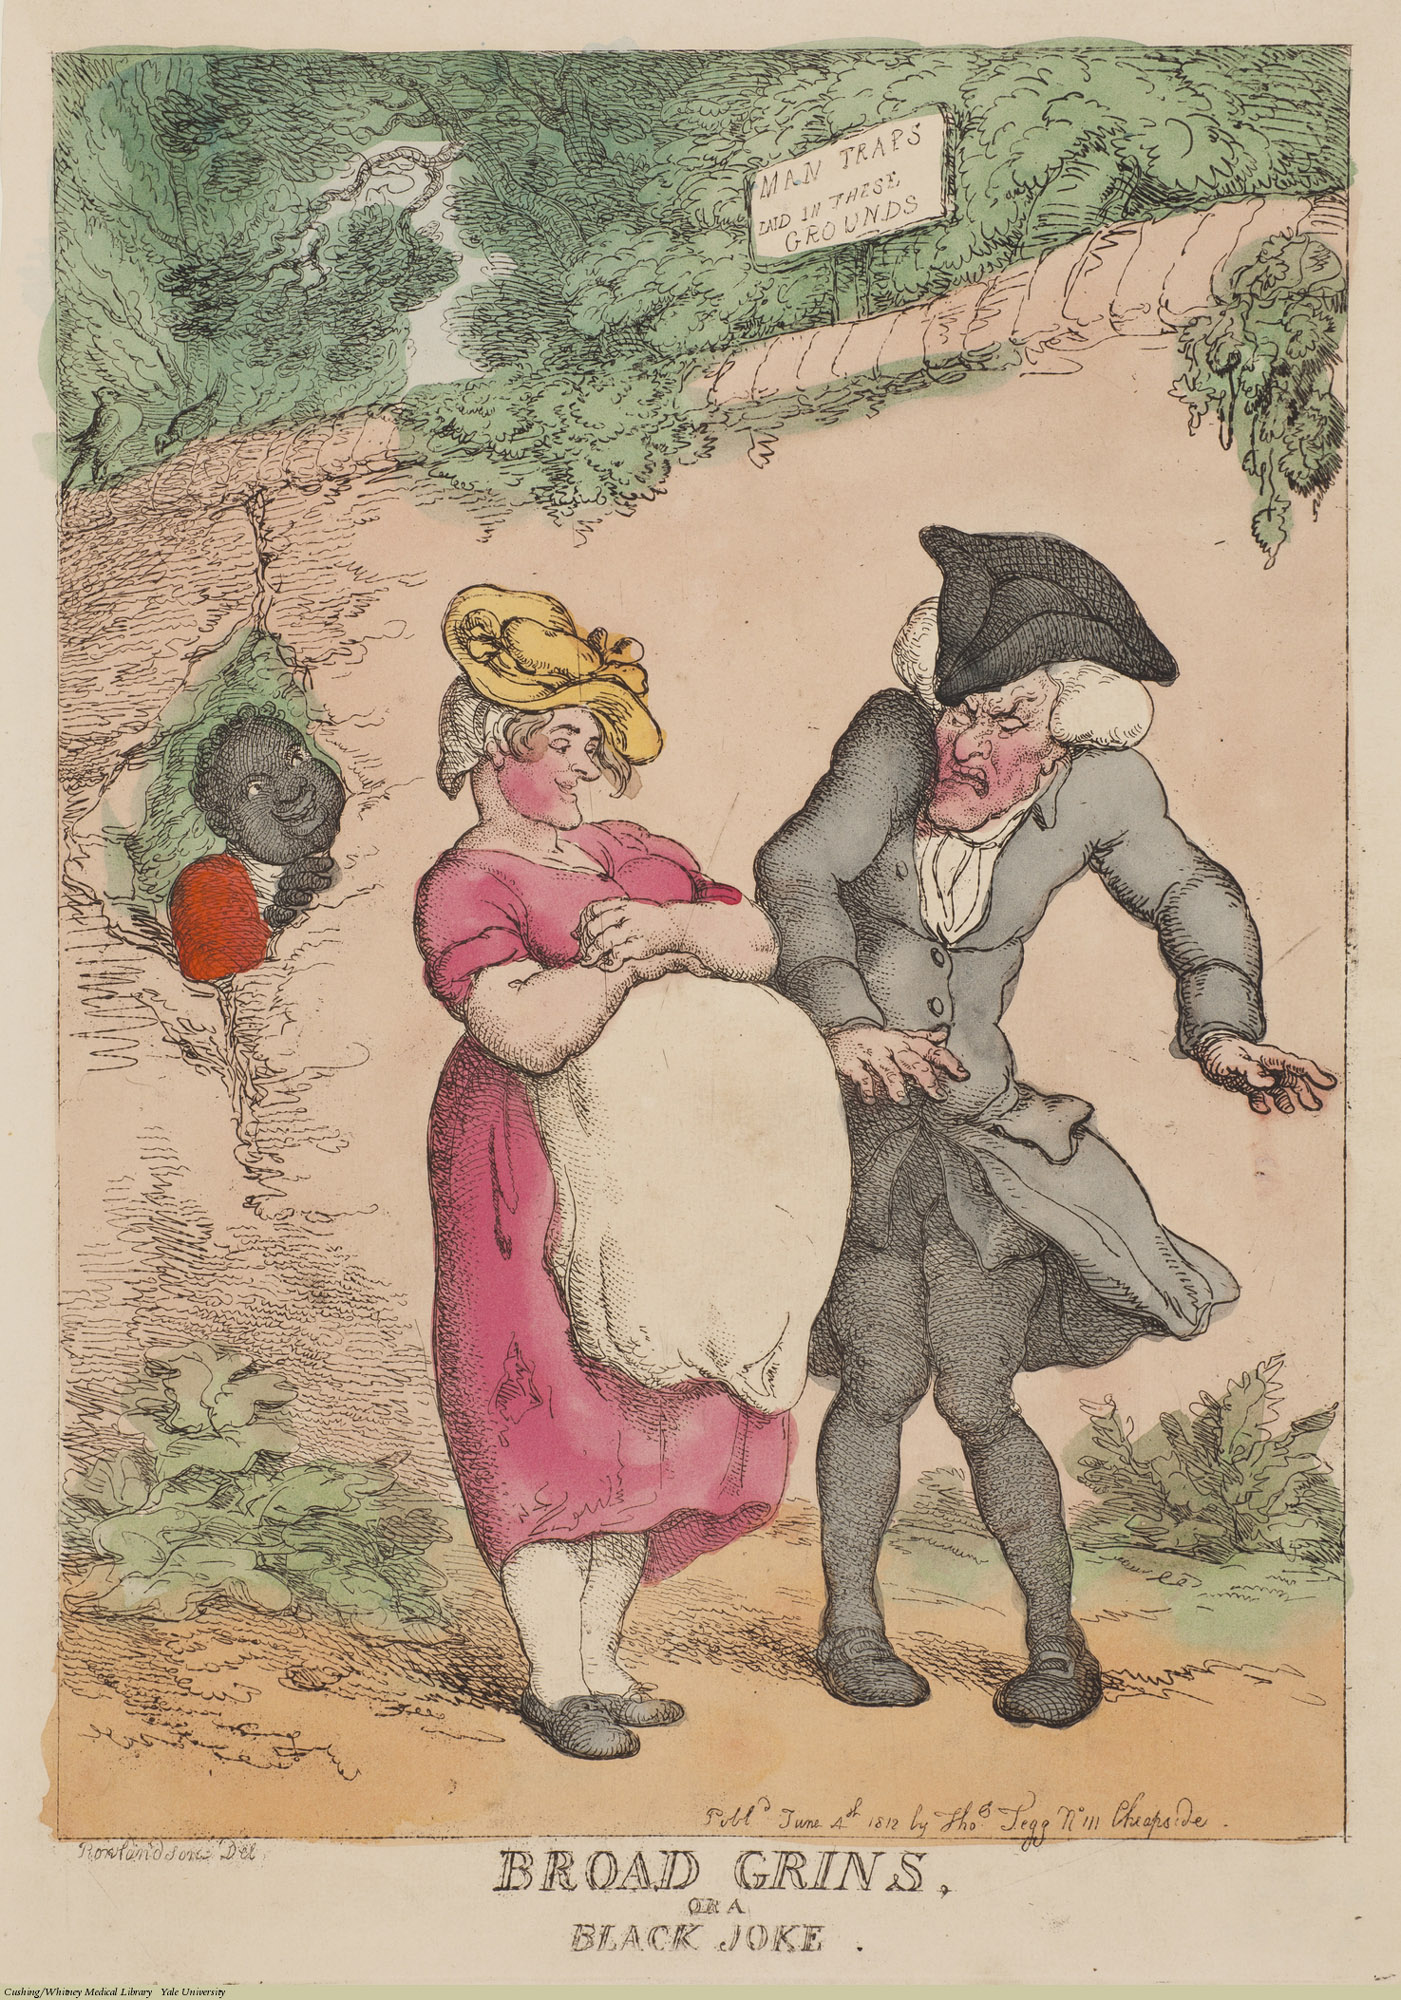 Broad Grins, or a Black Joke. Thomas Rowlandson, Etching coloured, 1812. Subject: Pregnancy, Misogyny.